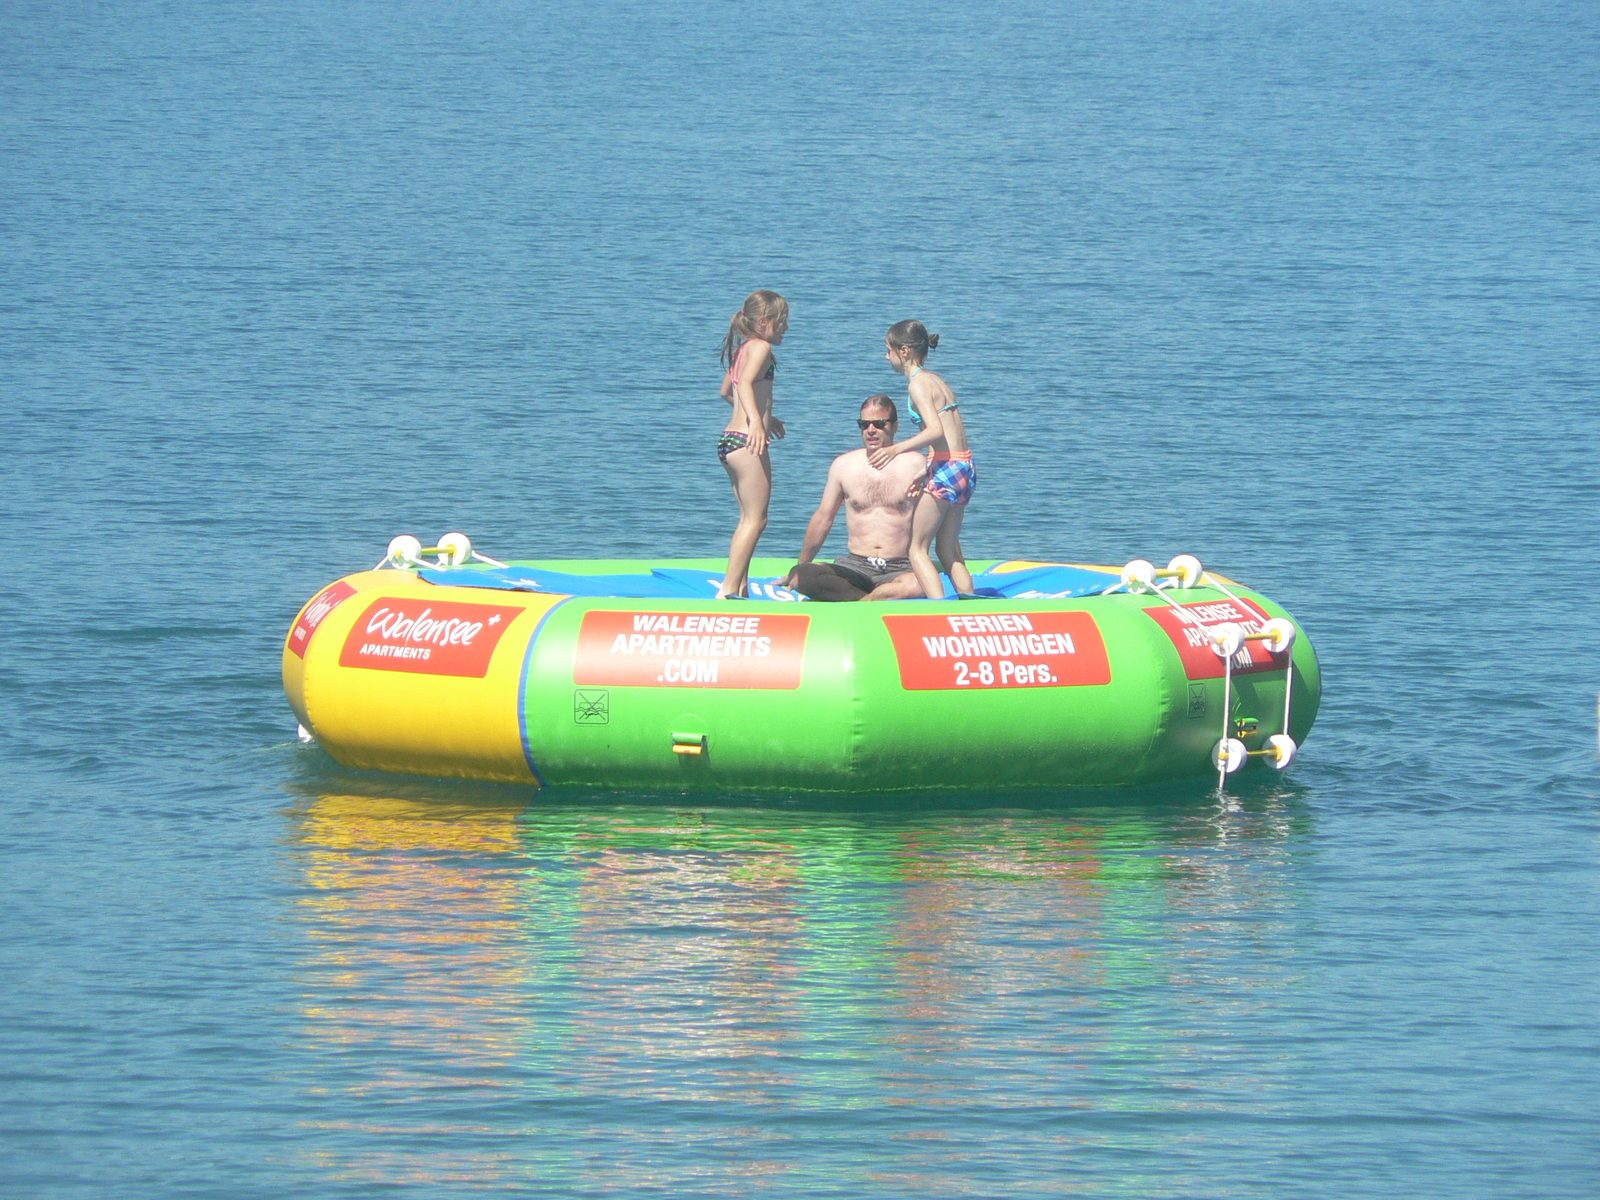 Children's attraction for (Landal)Resort Walensee book holiday affordably through Walensee Apartments Heidland Switzerland